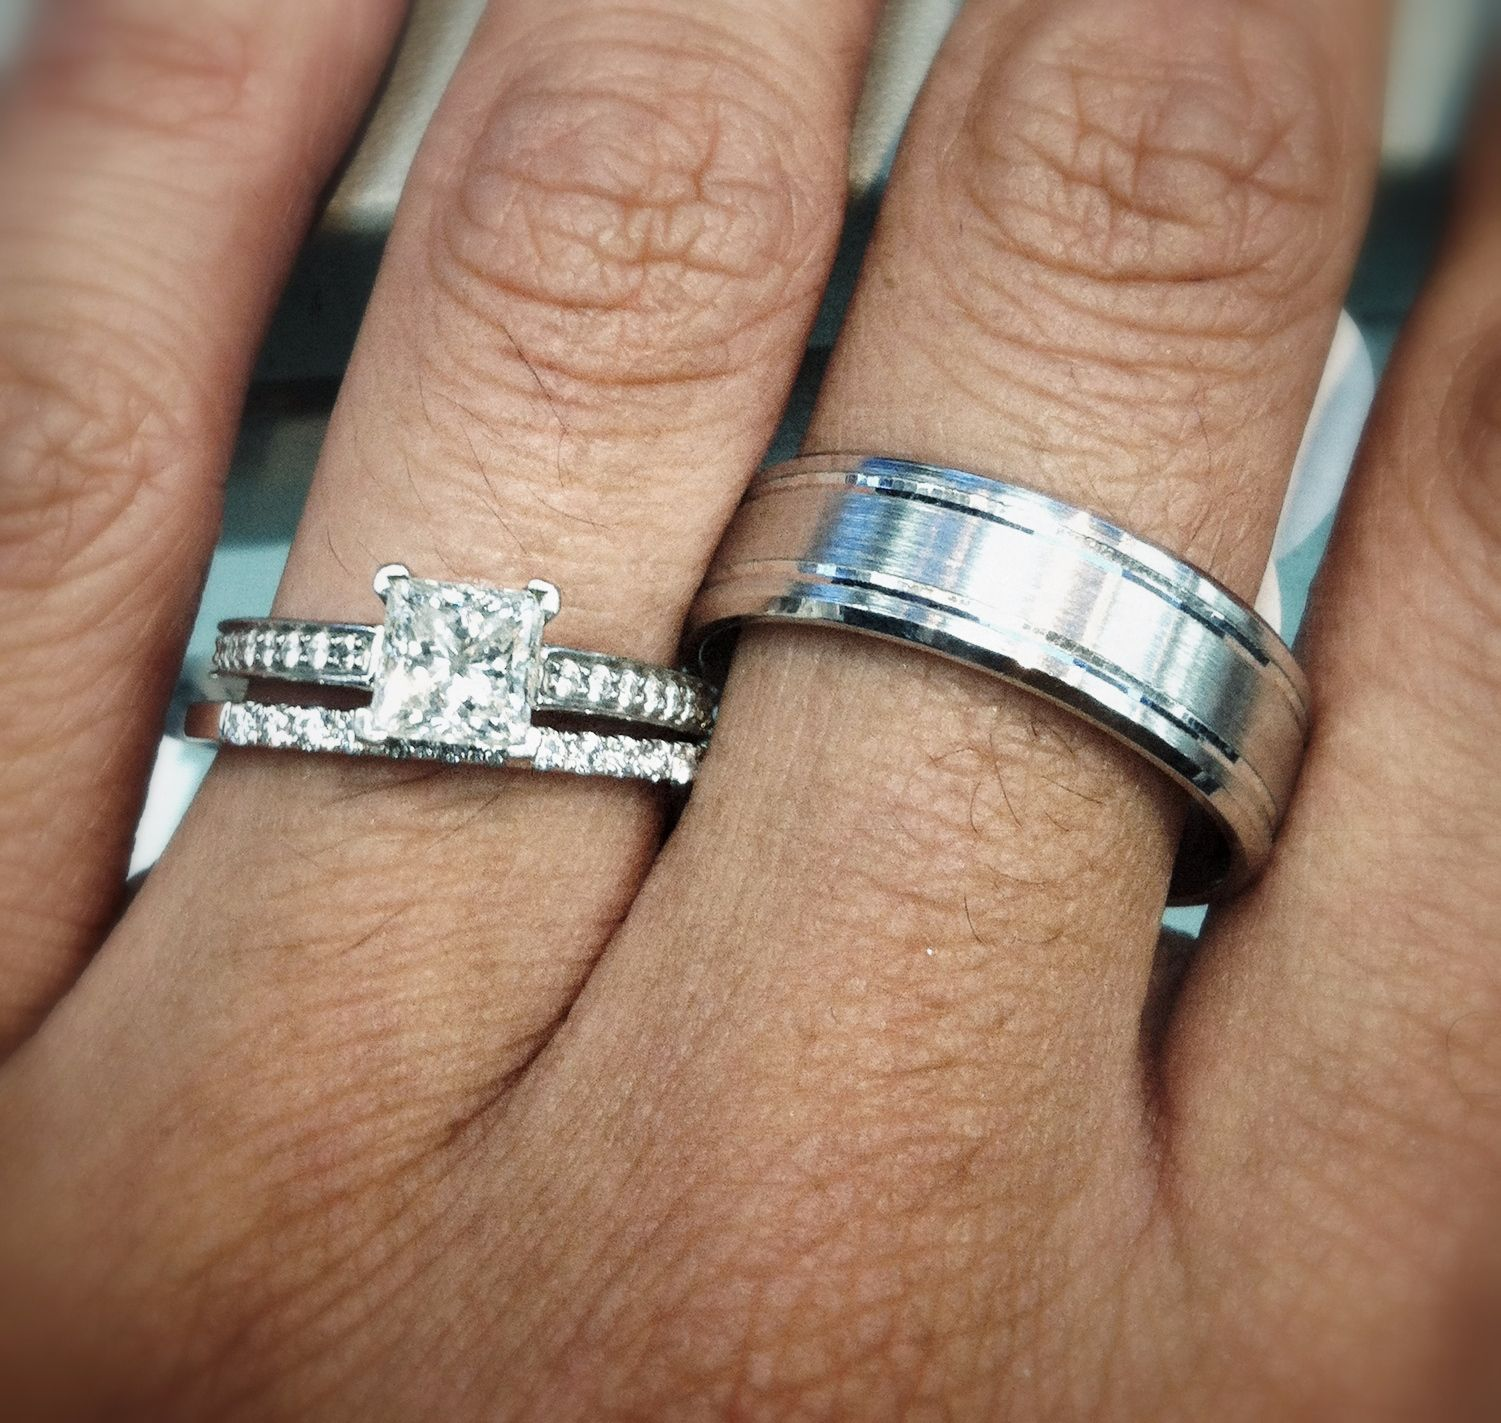 shane company wedding bands Engagement Ring Tiffany Grace Tiffany Co Wedding Rings Shane Co